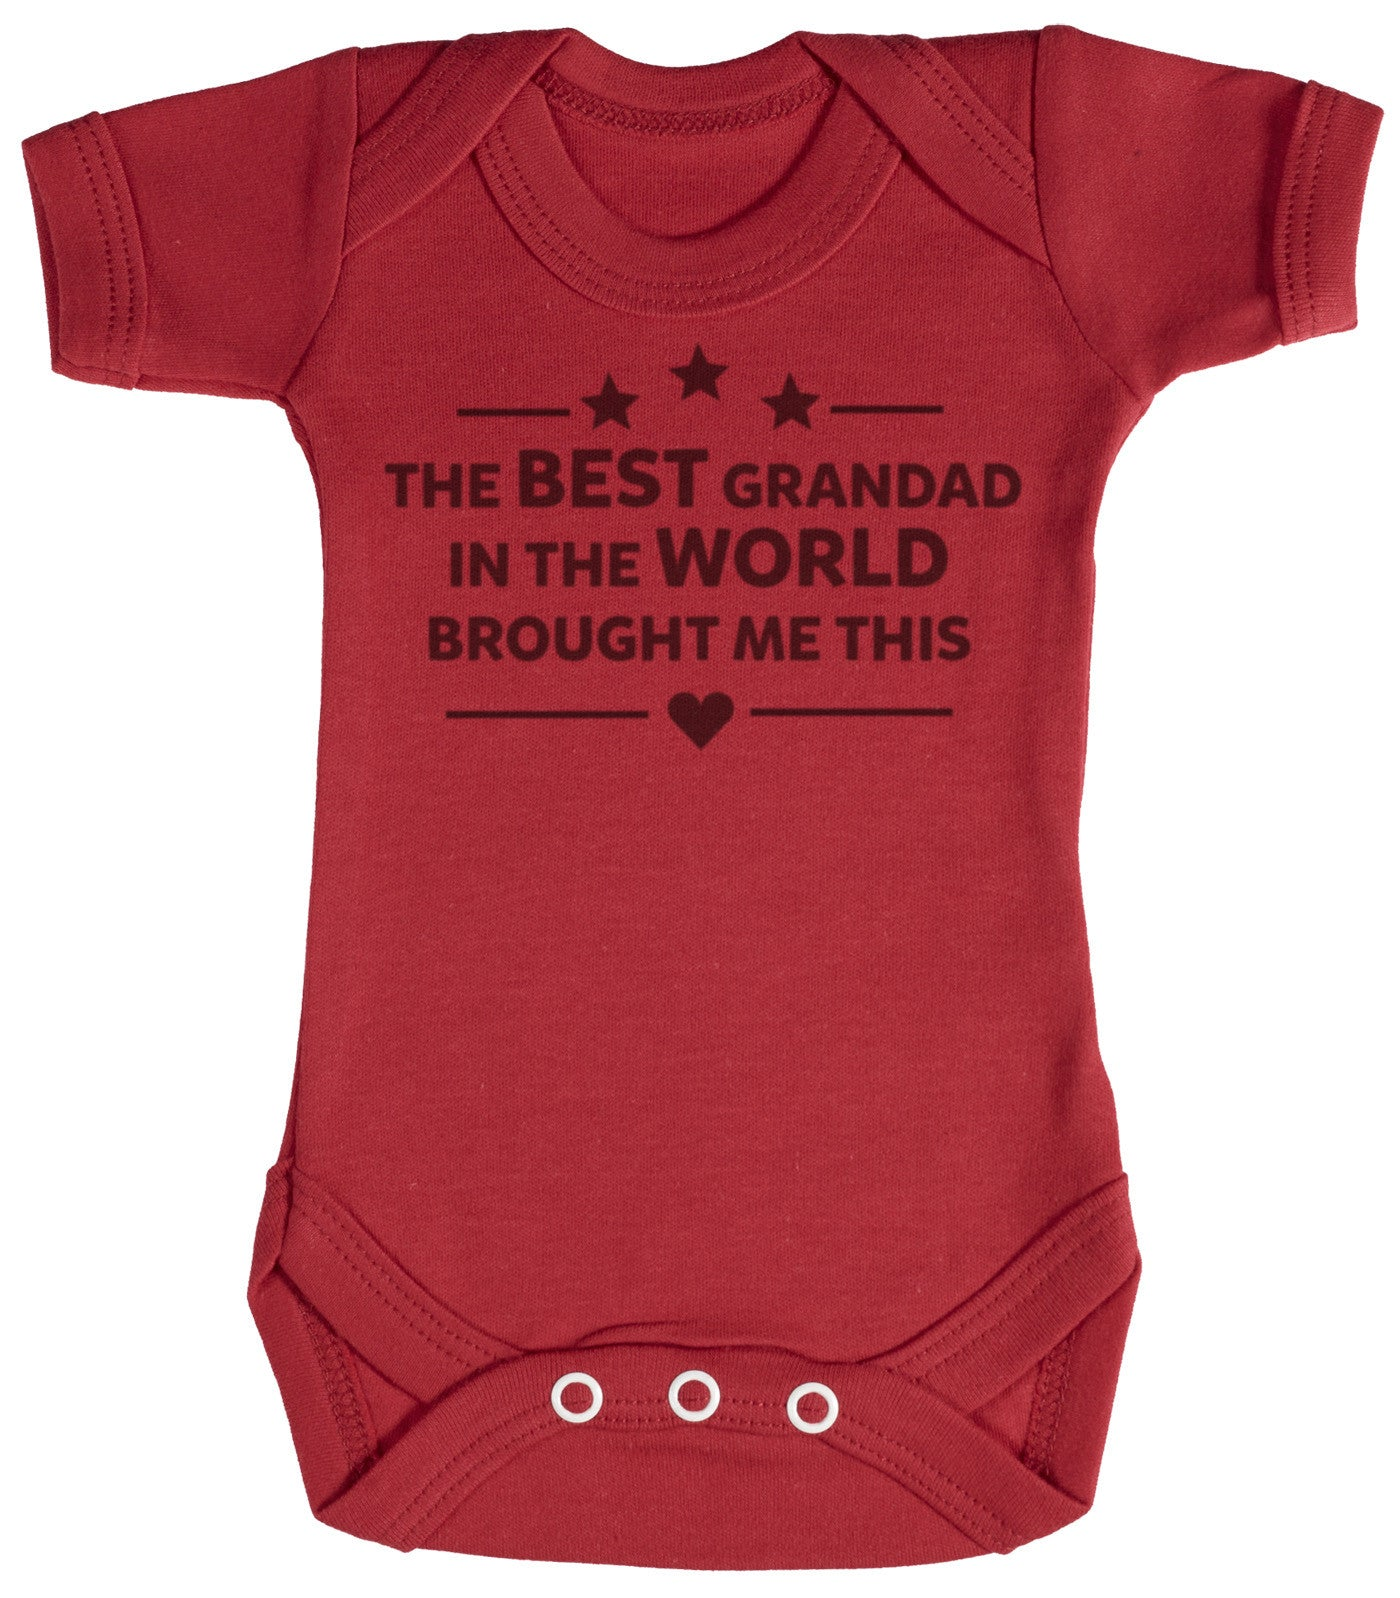 The Best Grandad In The World Baby Bodysuit / Babygrow